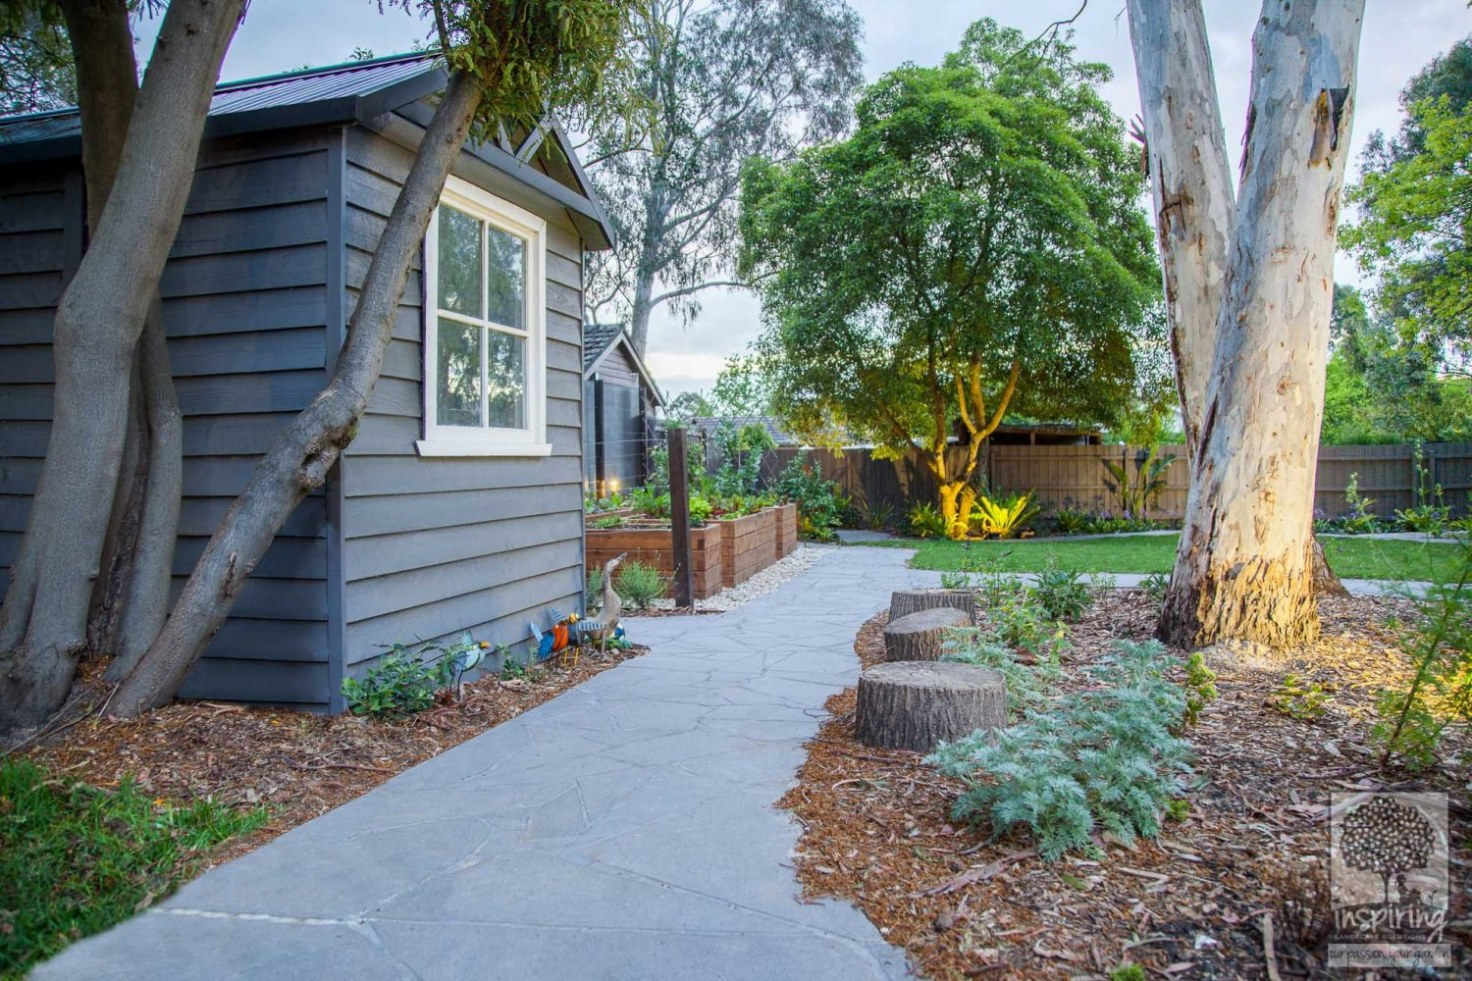 Backyard with crazy paving designed for kids with vegetable patch after landscaping by Inspiring Landscape Solutions Melbourne.